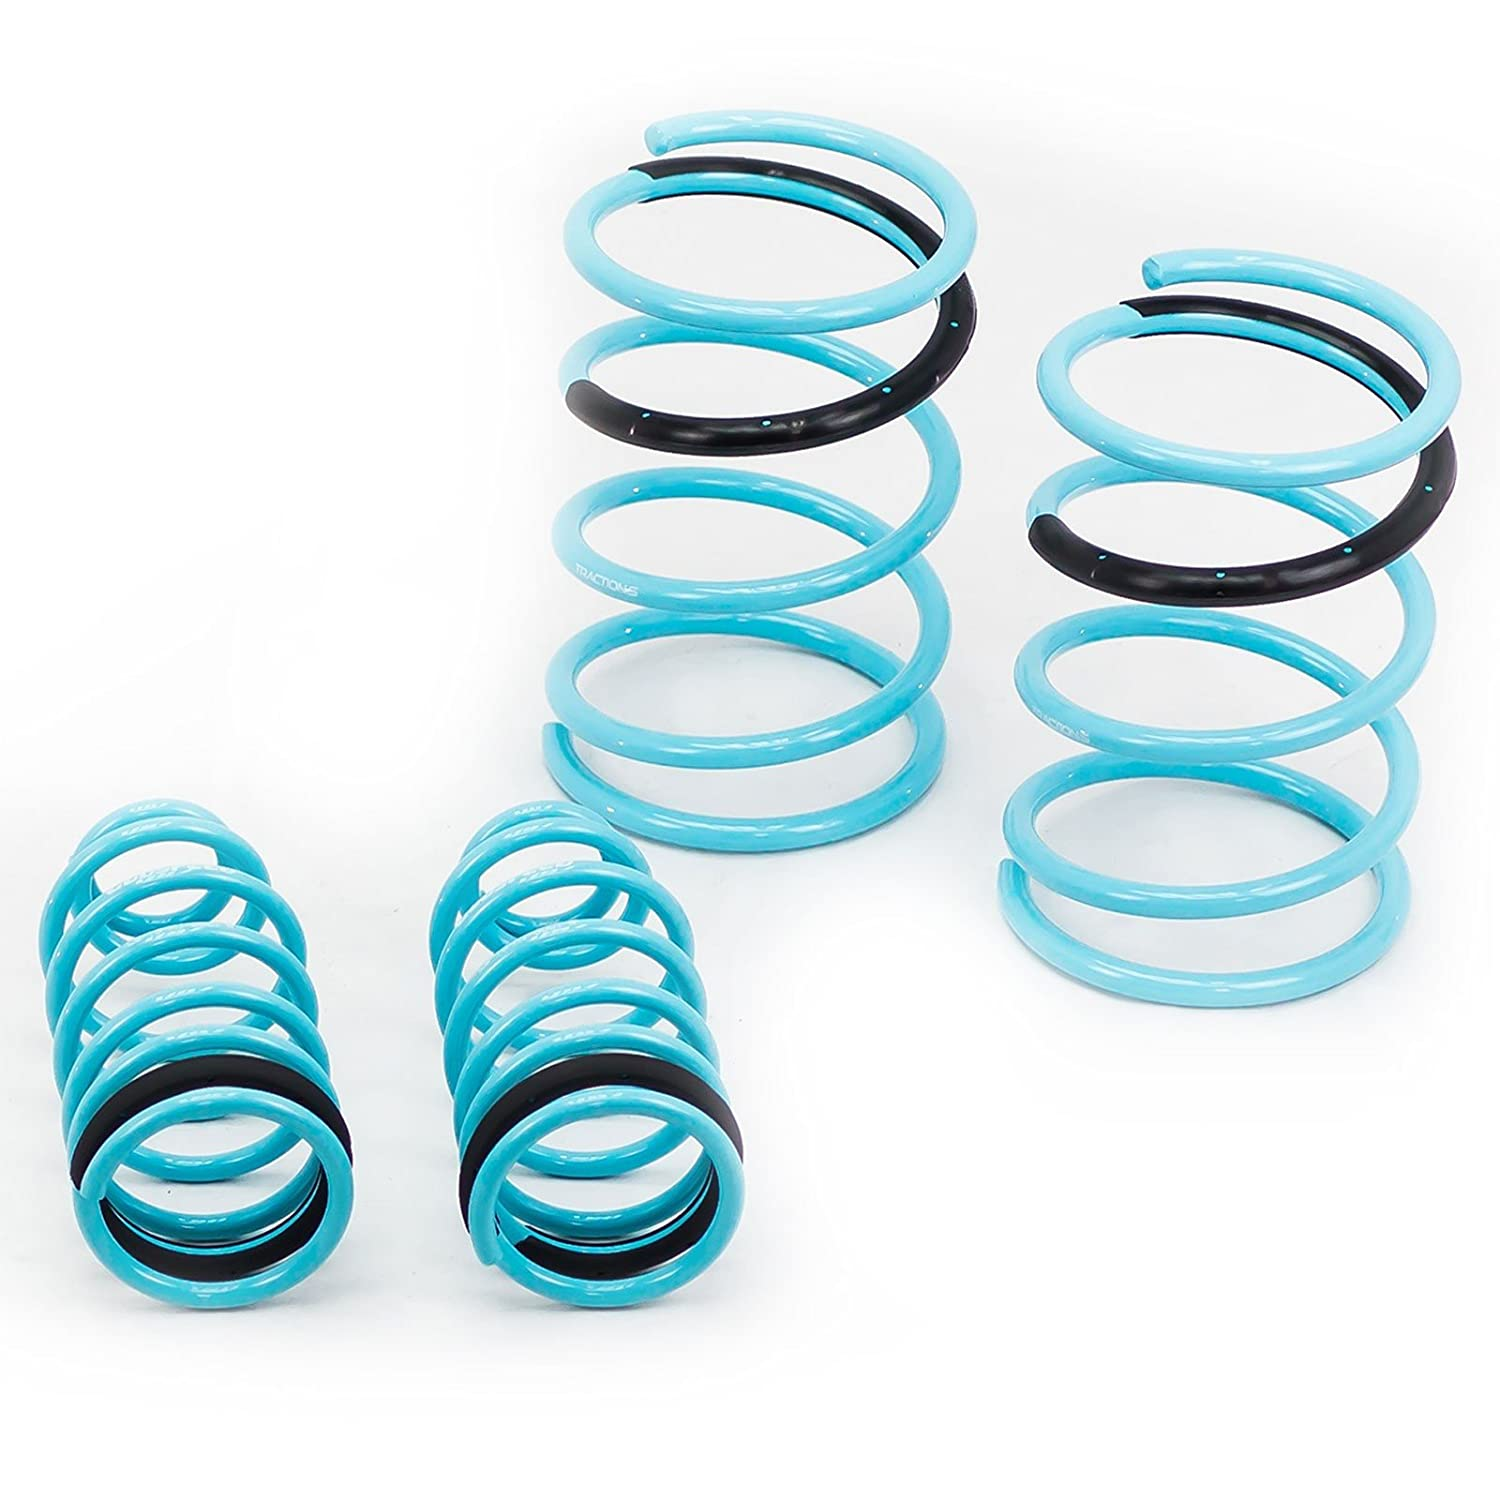 3G gsp set kit Godspeed TRACTION-S SPRINGS FOR Mitsubishi Eclipse 2000-2005